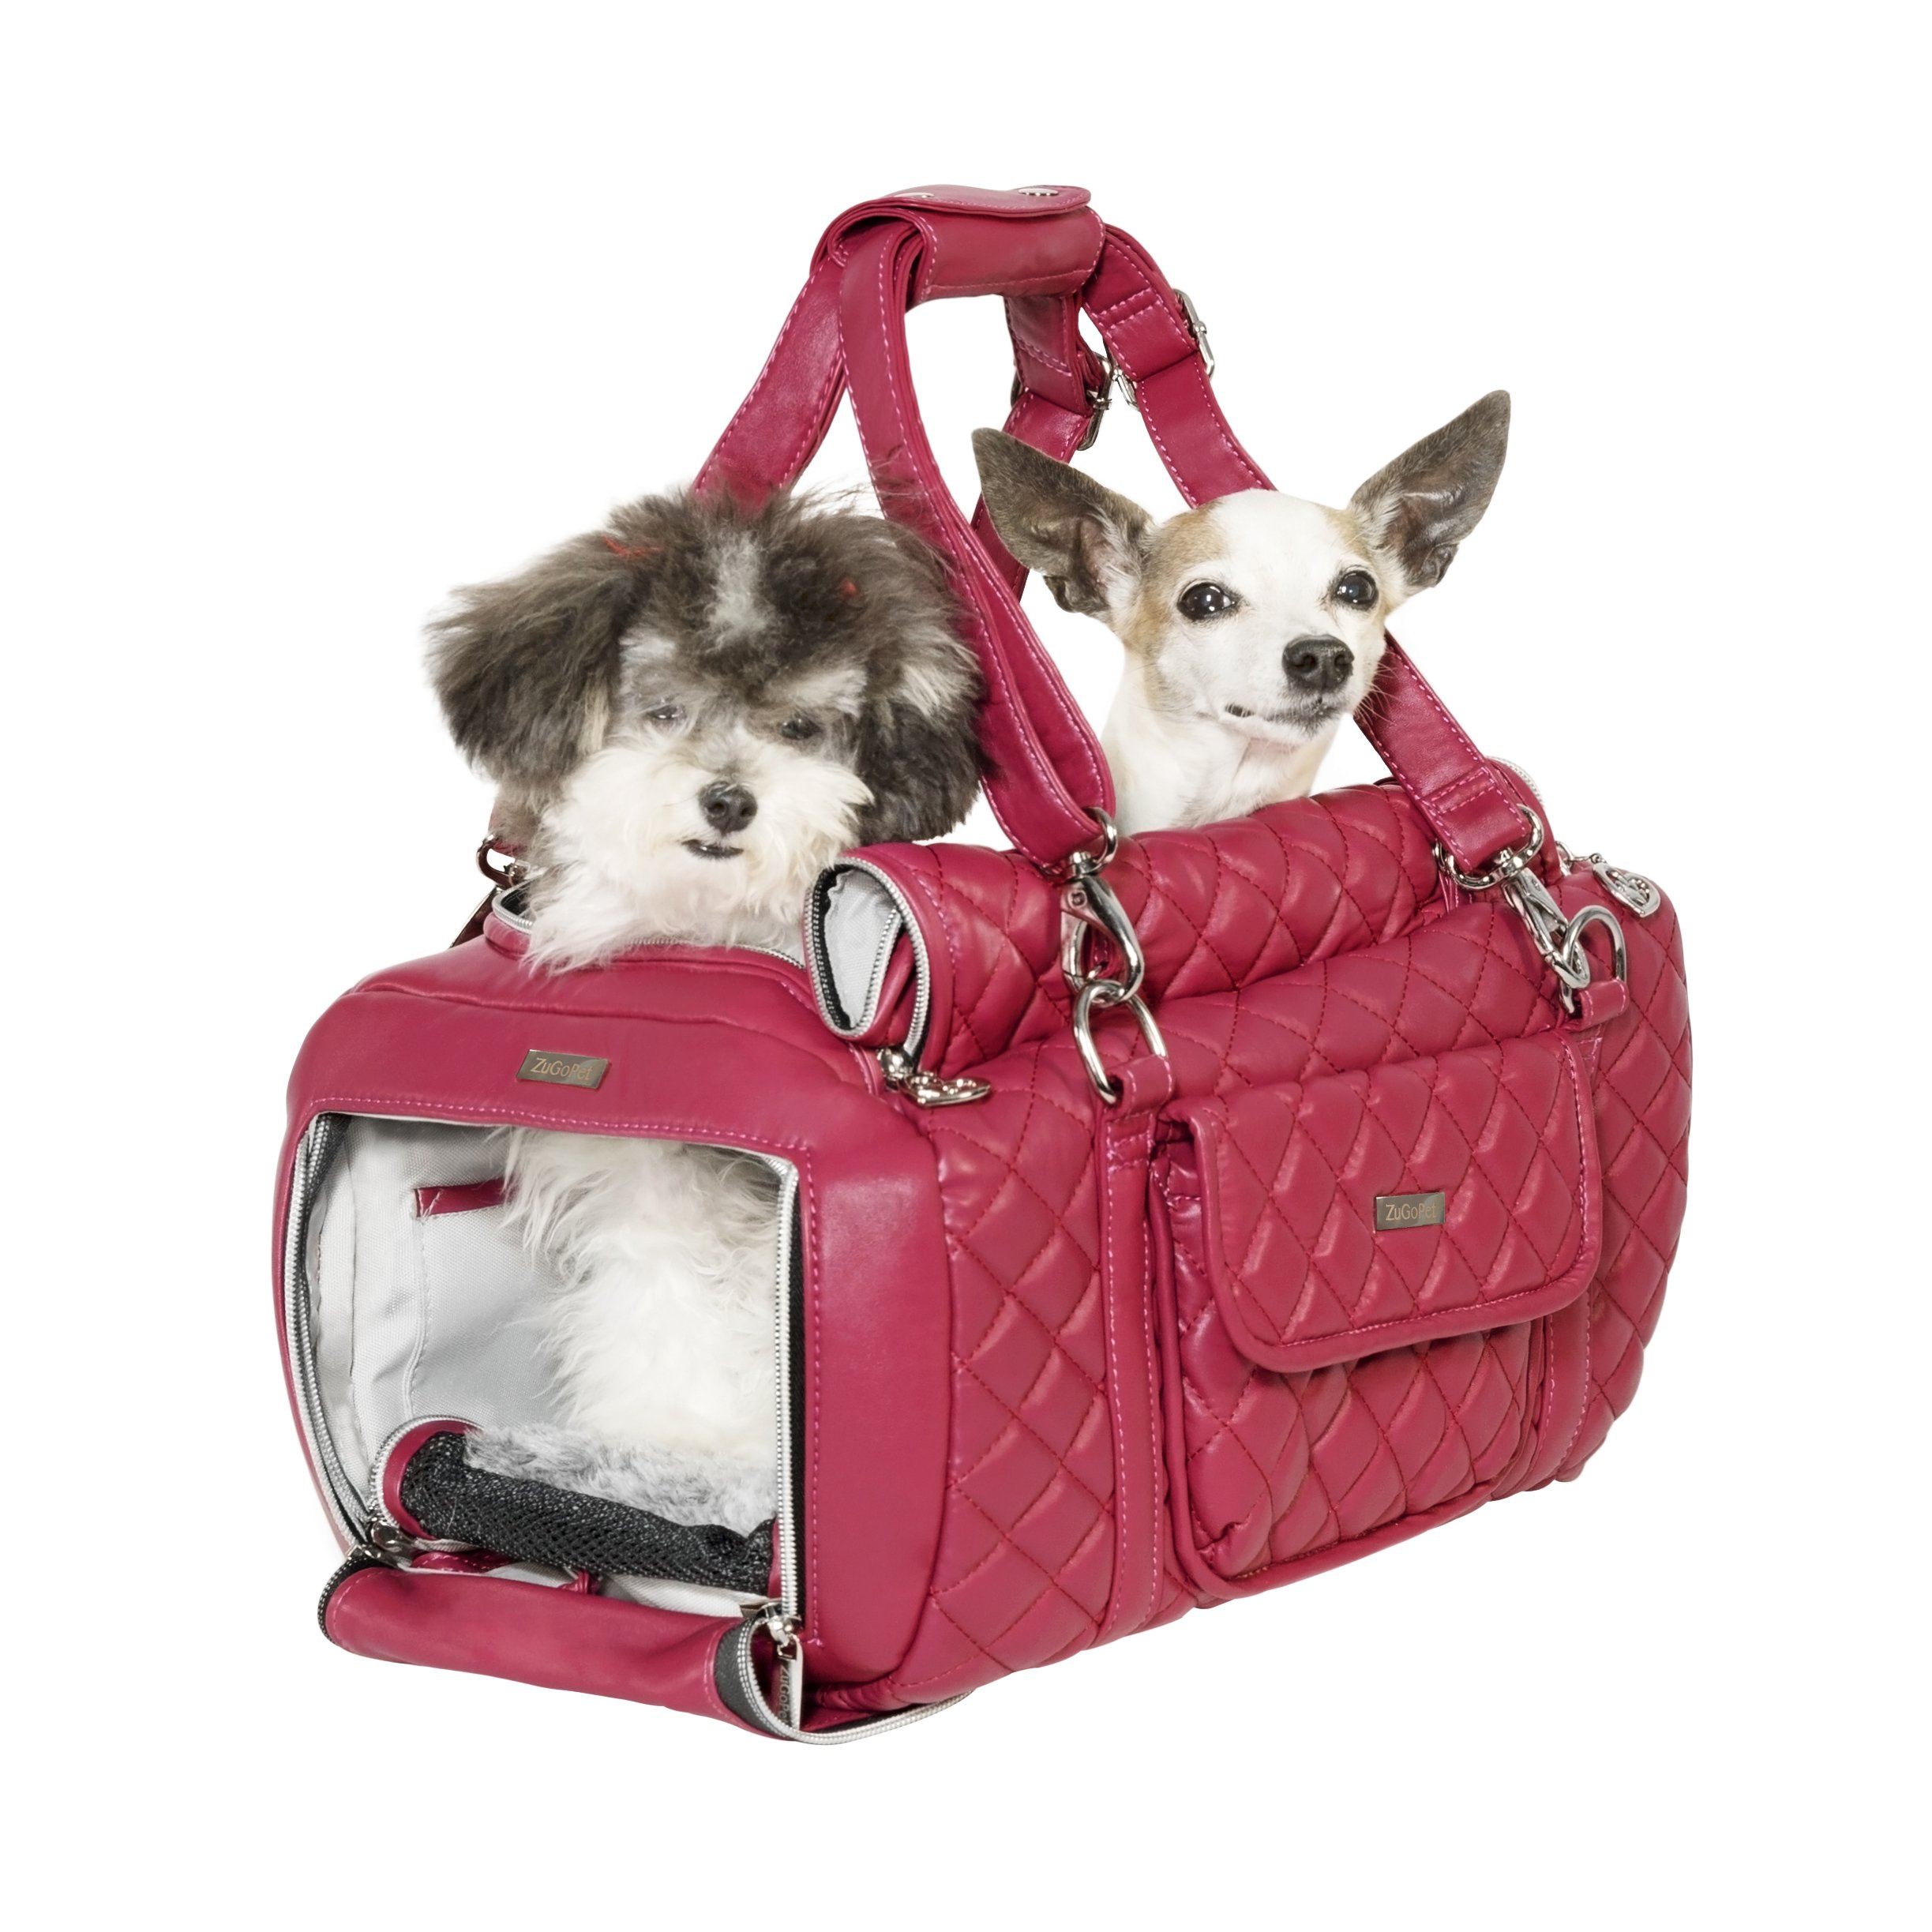 ZuGoPet Faux Leather Pet Carrier Handbag Purse Bag Dogs and Cats (Pink)